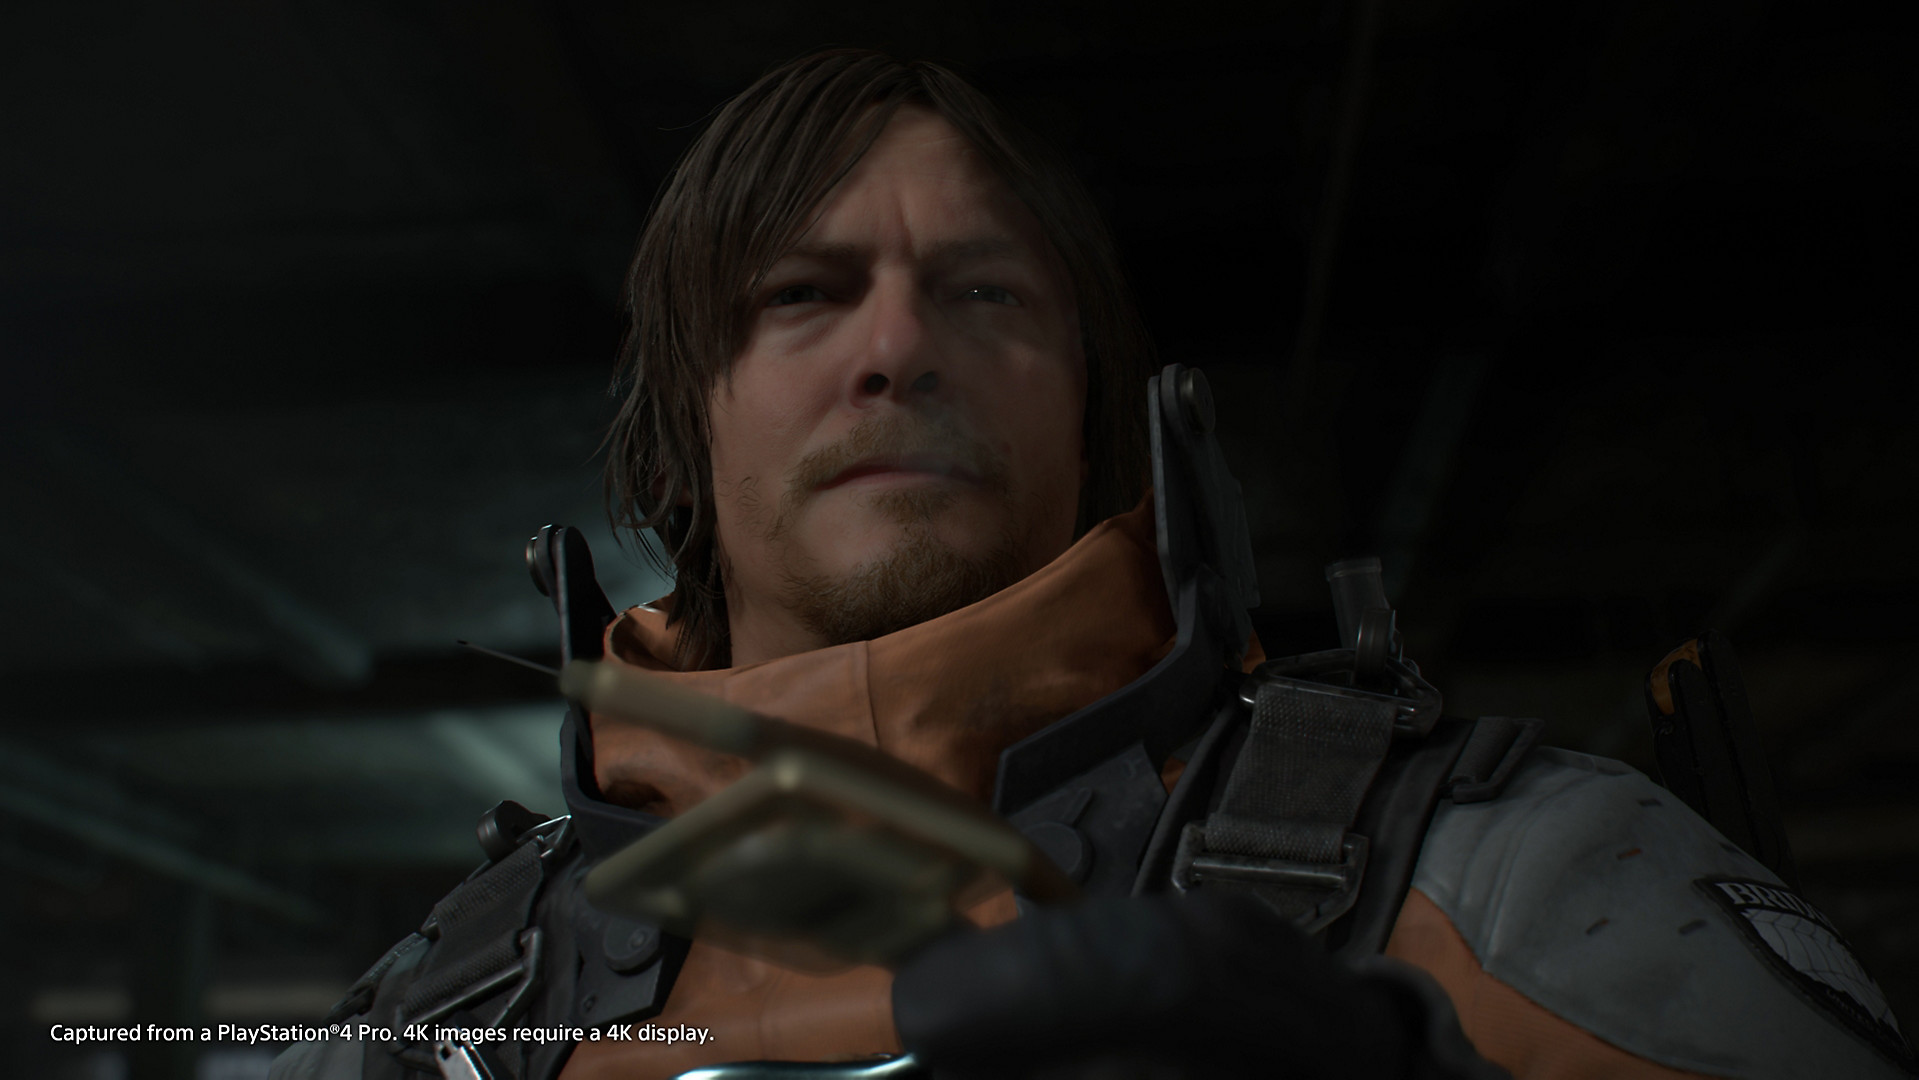 death stranding costumes suit colors